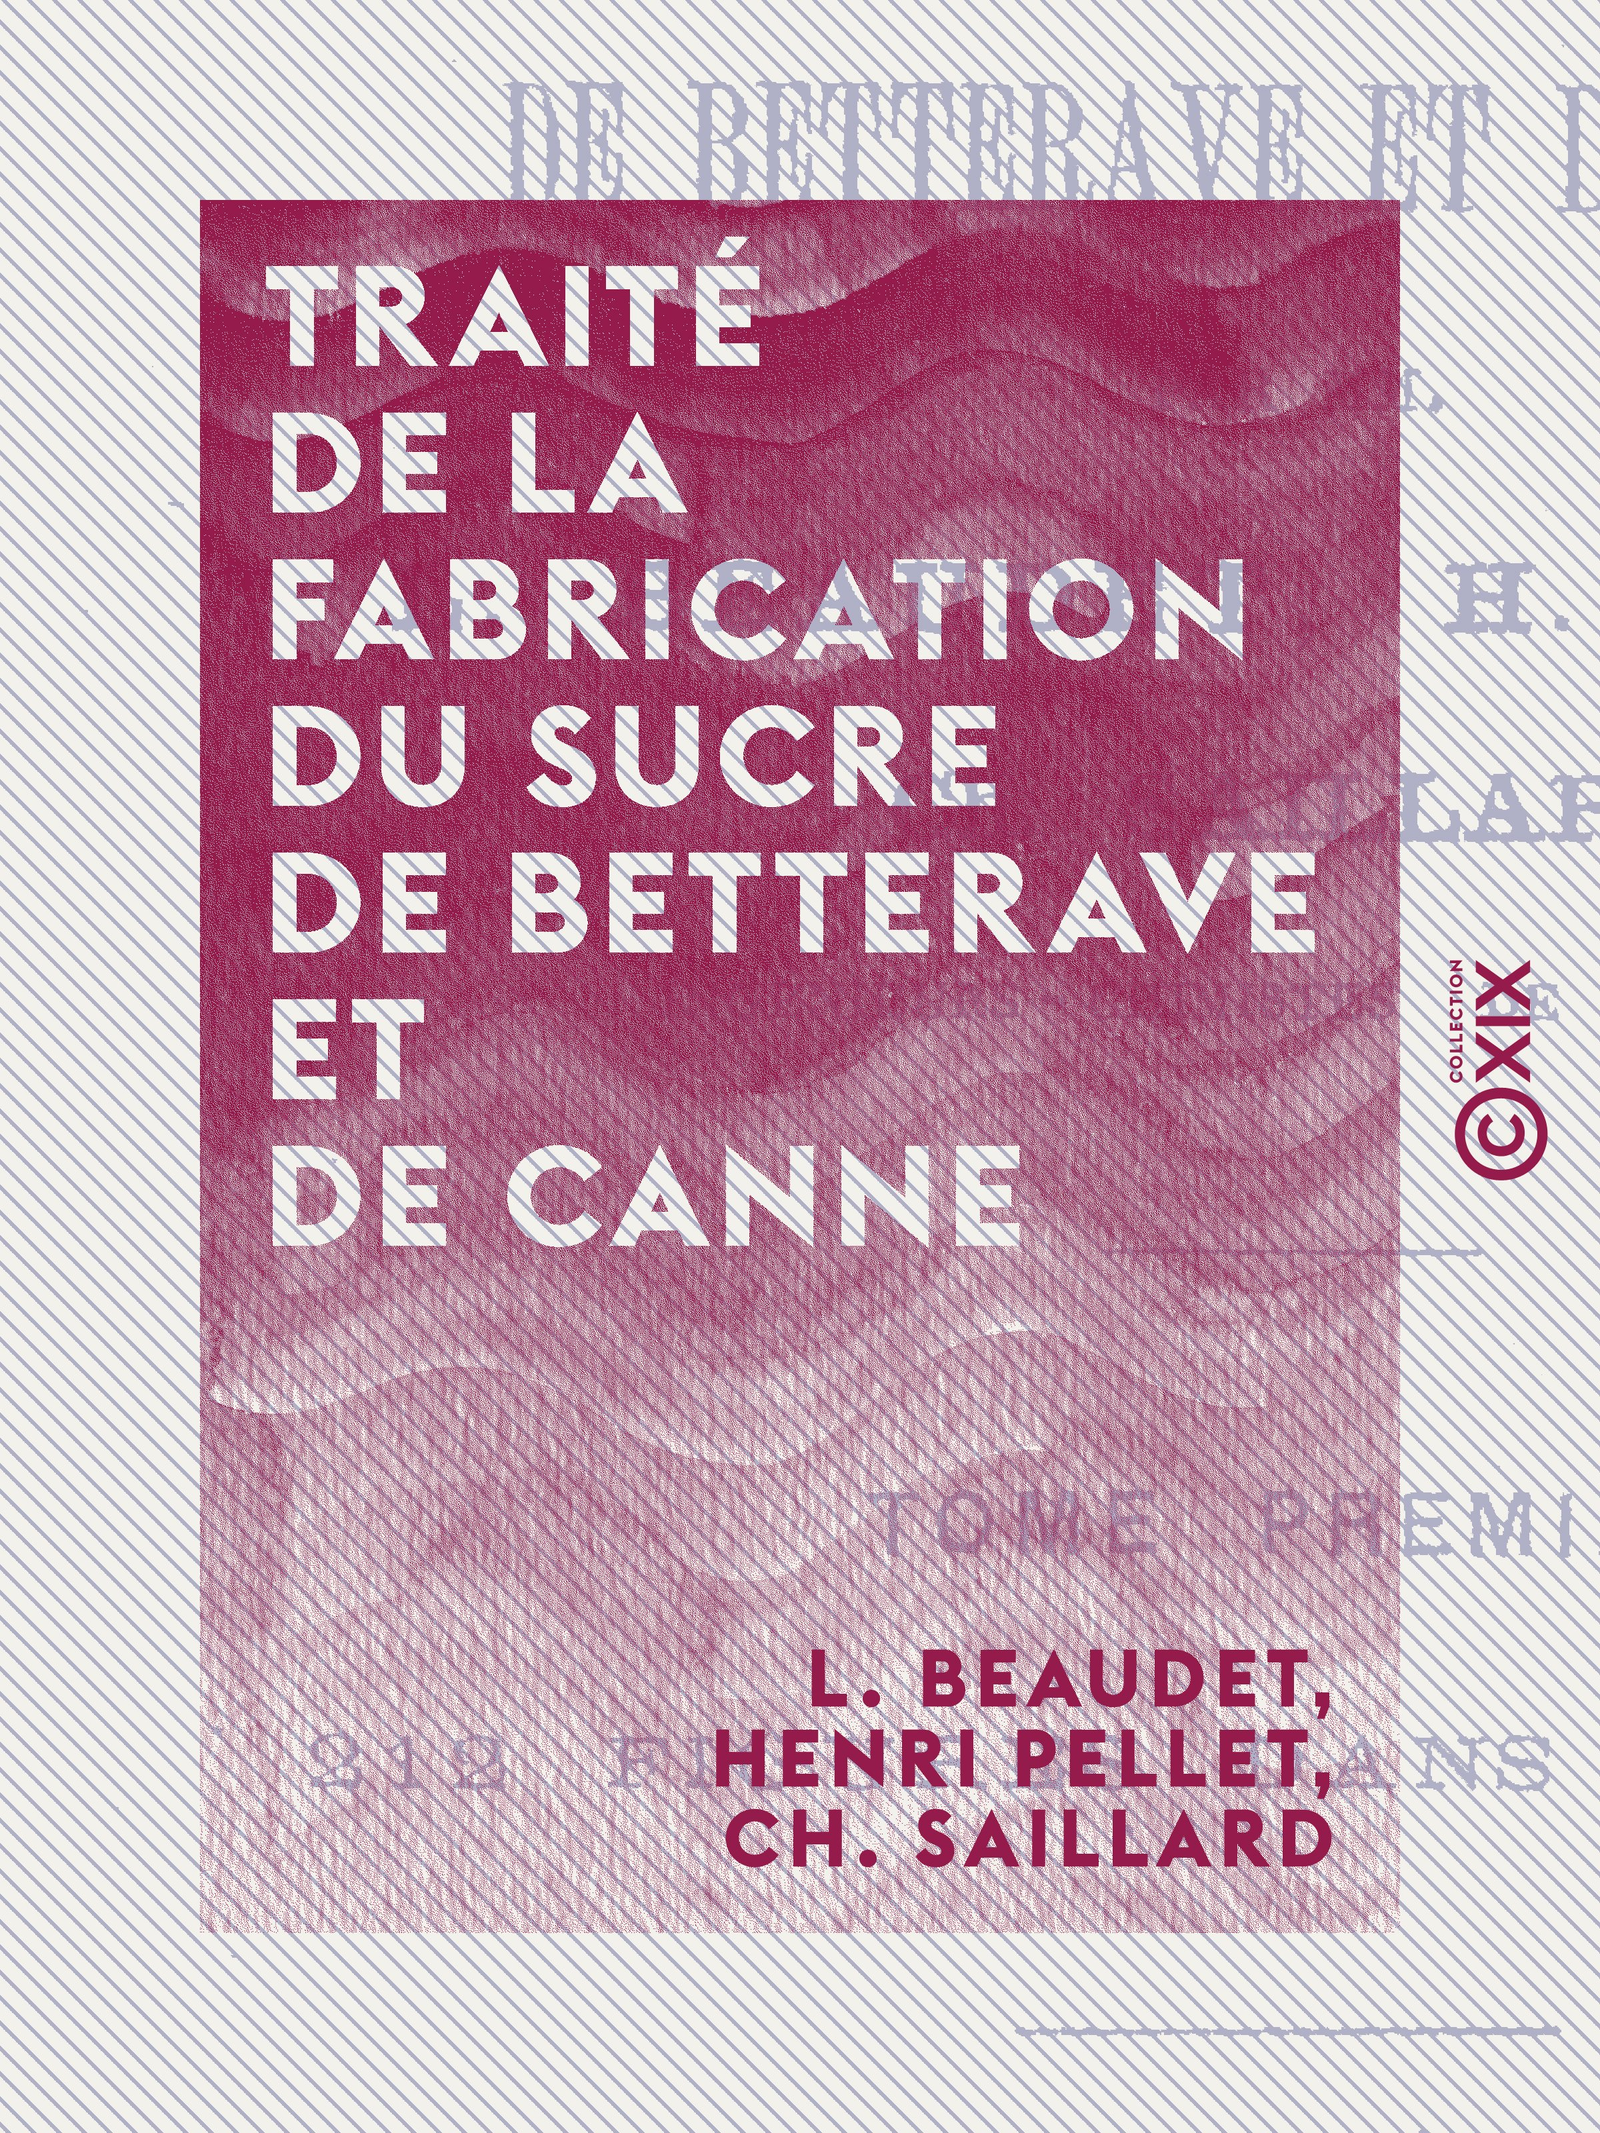 Traité de la fabrication du sucre de betterave et de canne - Tome I